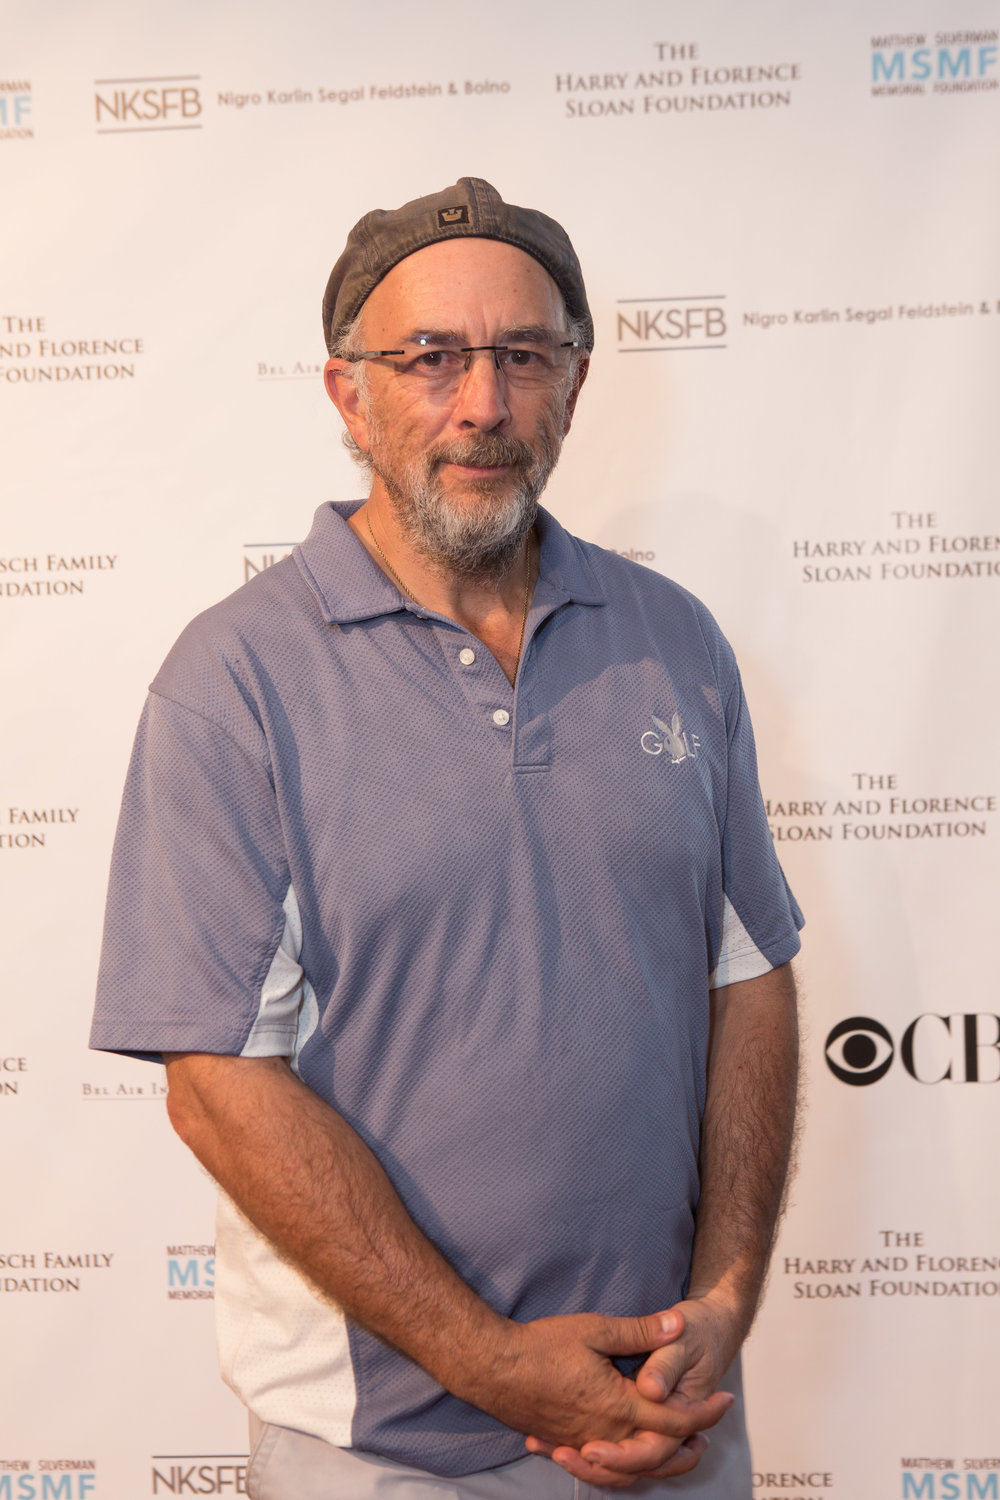 IMG_8254-CELEBRITY-Richard Schiff.jpg